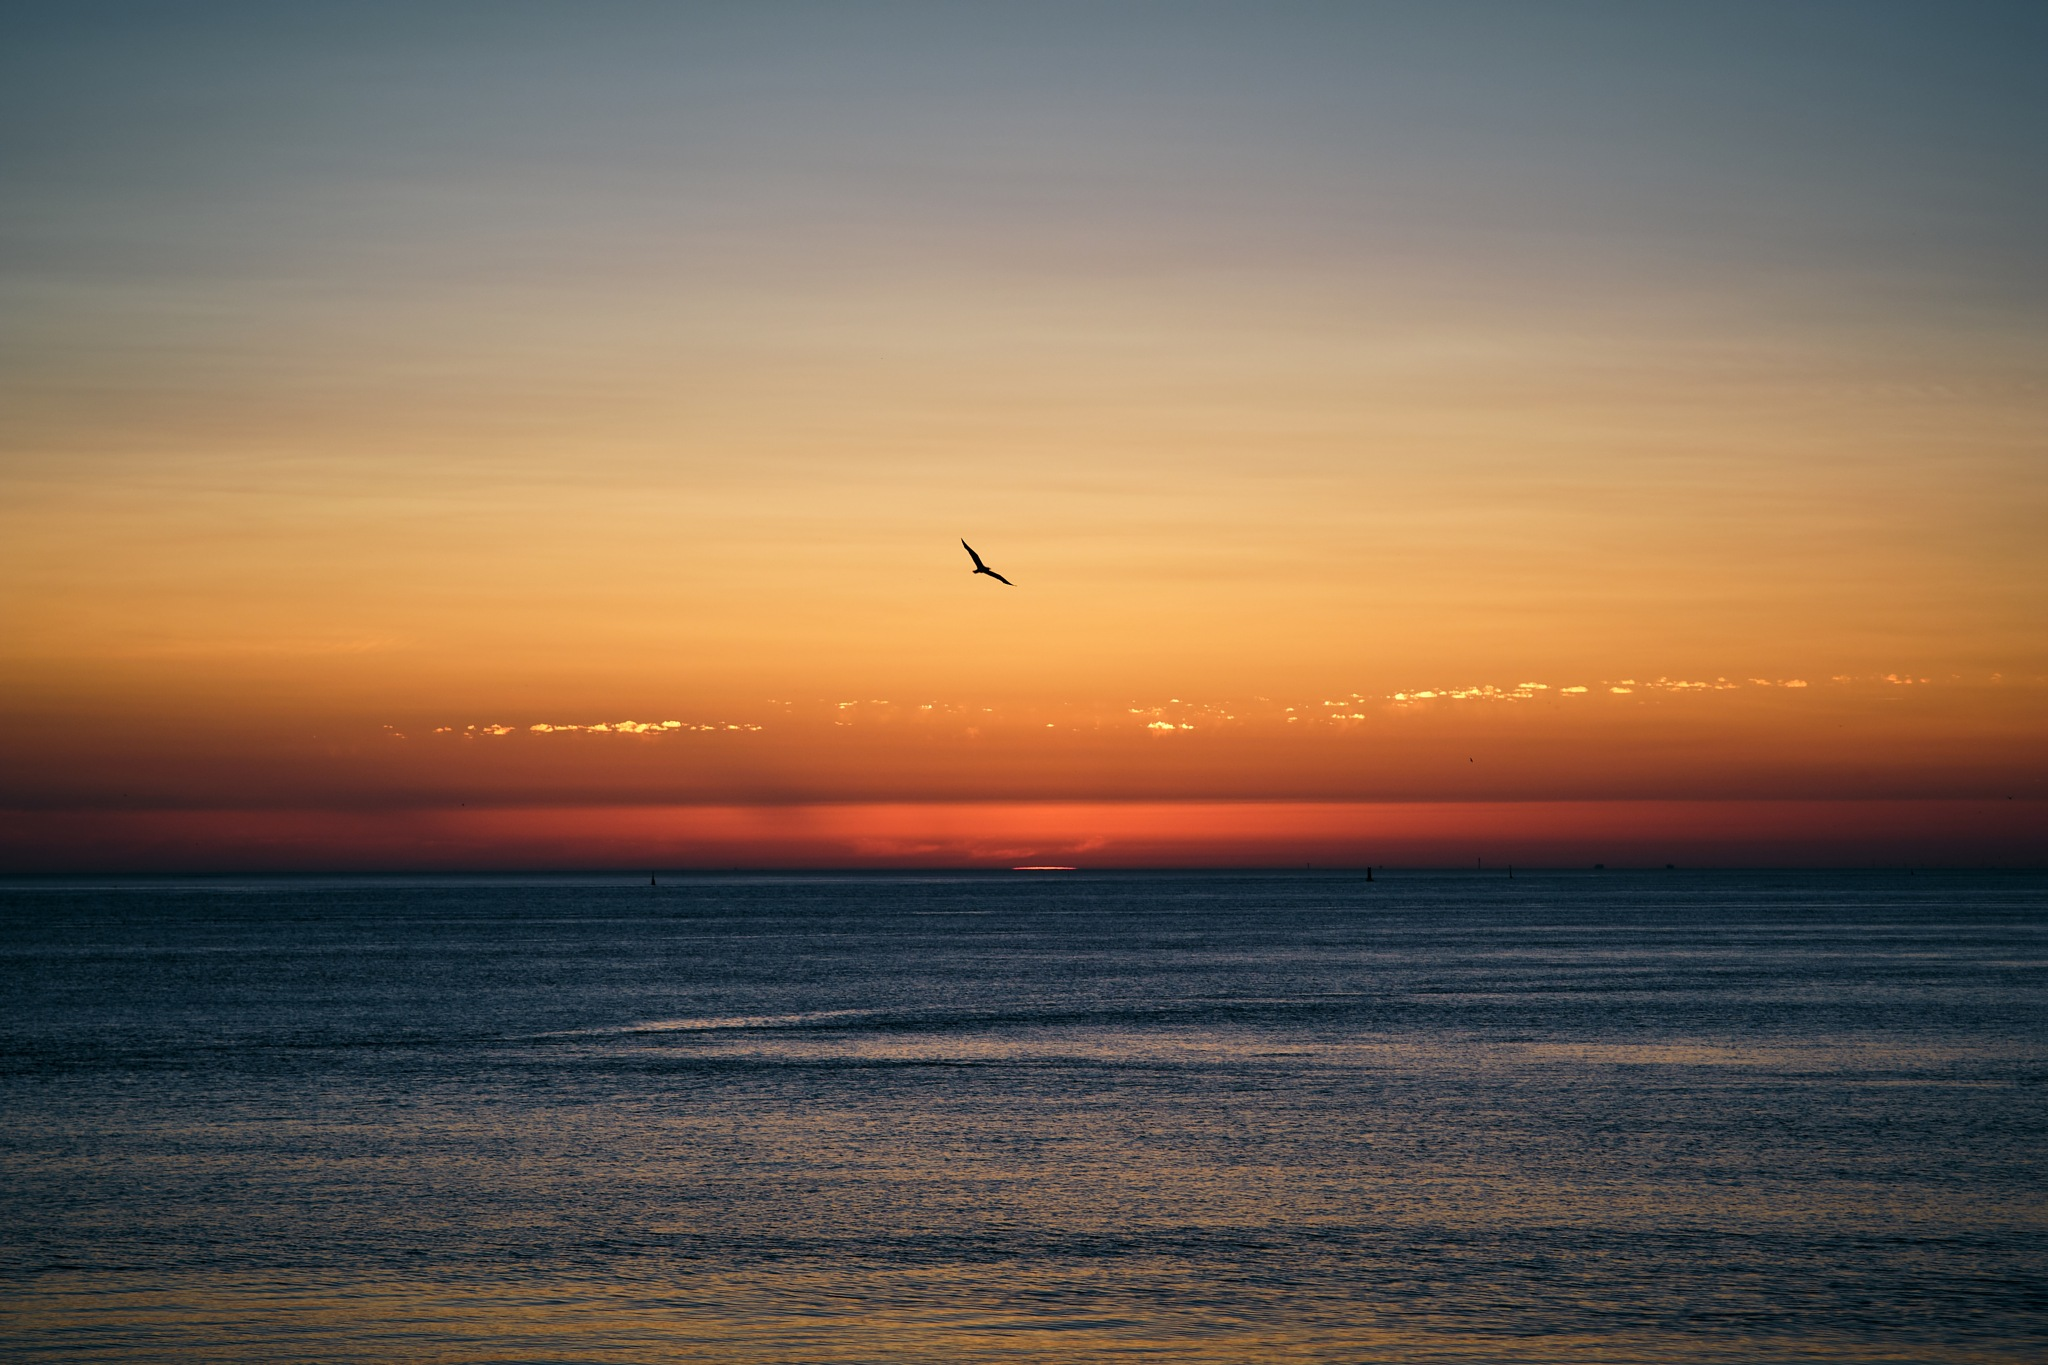 Sunset over the north sea by Alexander Woeste